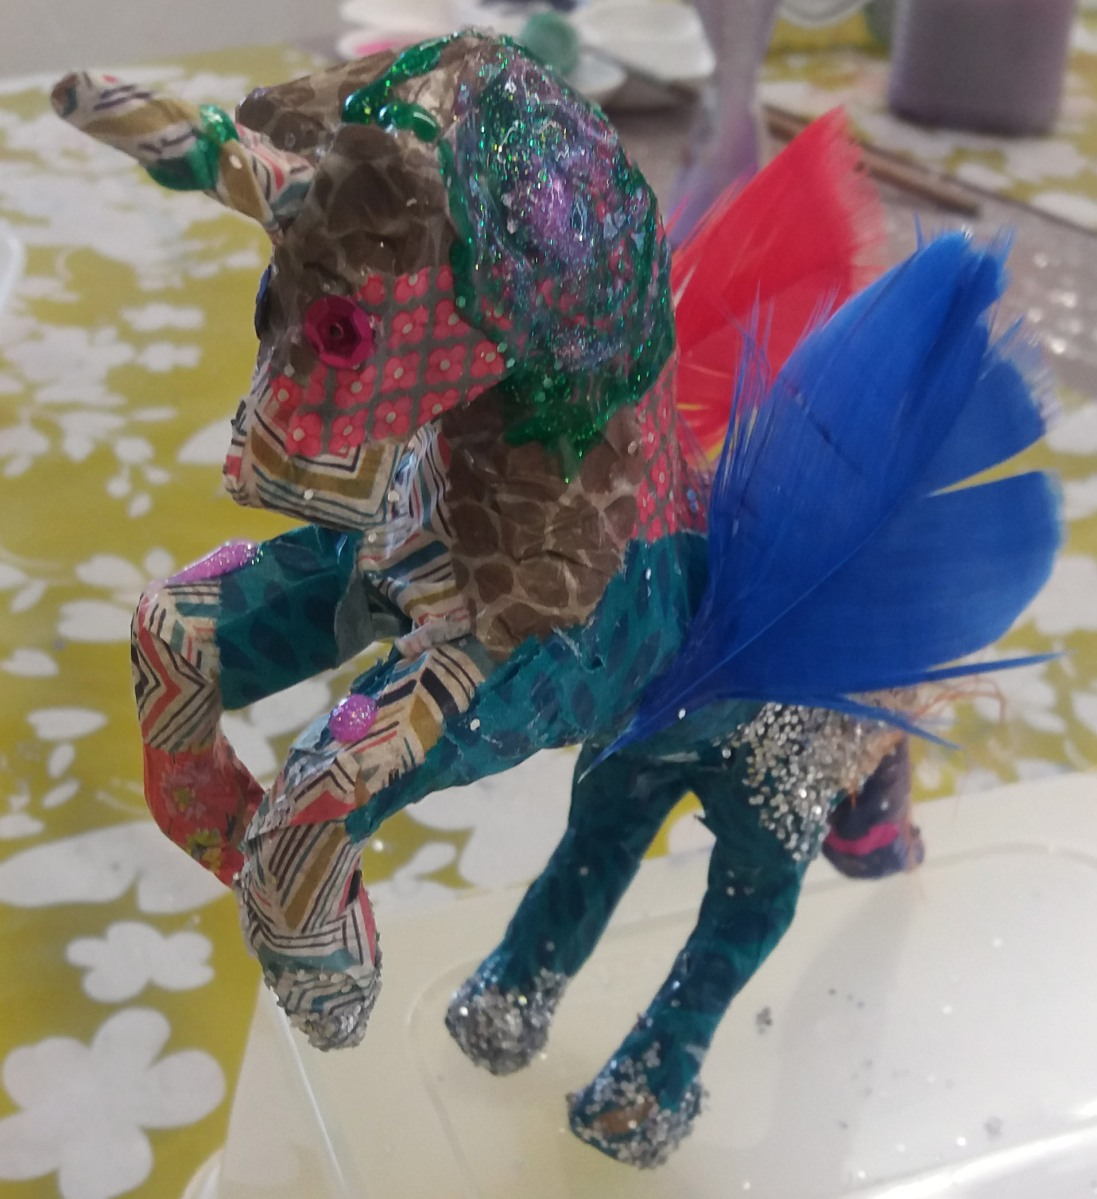 Decoupage unicorn with blue & red feathers, glitter & sequins made at the Tuftydawn Designs studio.